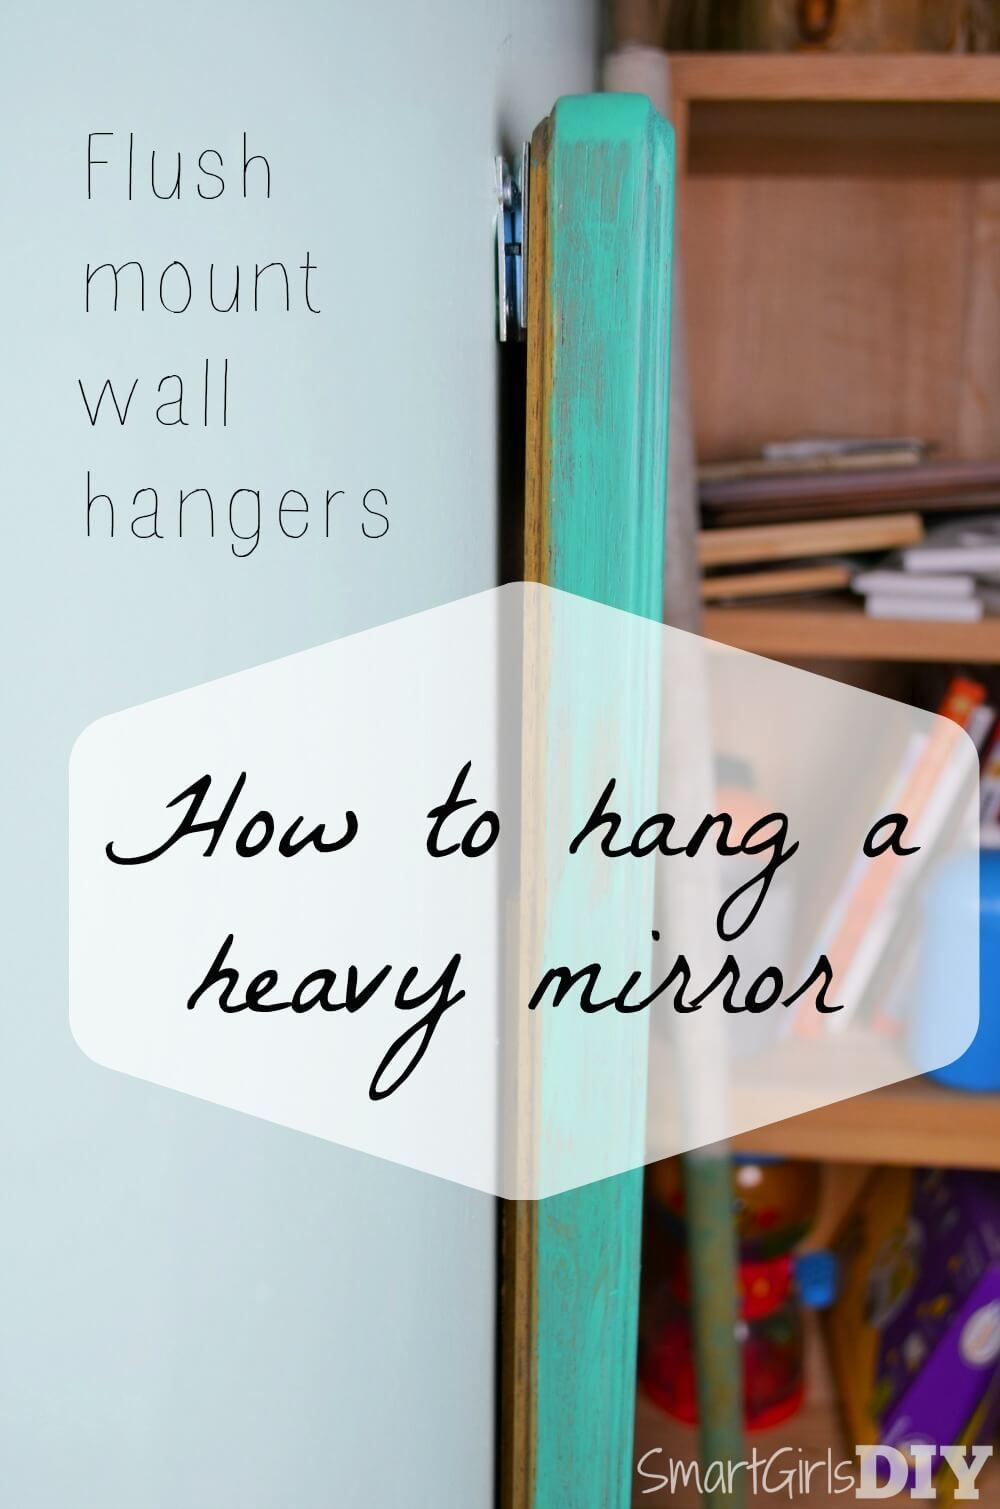 how to hang a heavy mirror with flush mount wall hangers pictures to hang in